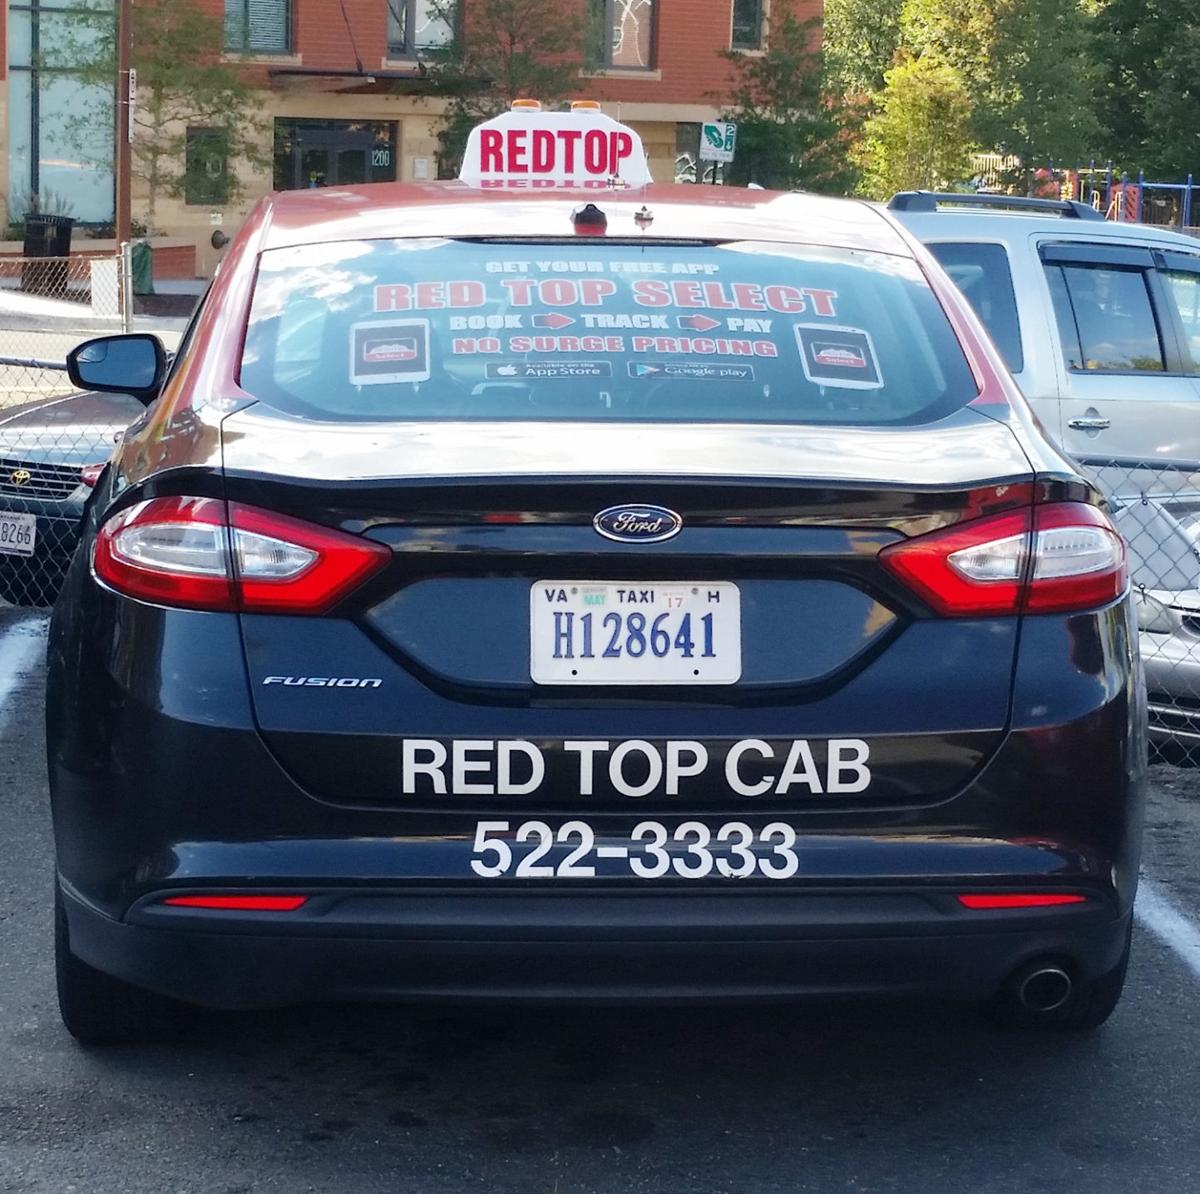 after review cab company allowed to keep back window decals arlington. Black Bedroom Furniture Sets. Home Design Ideas